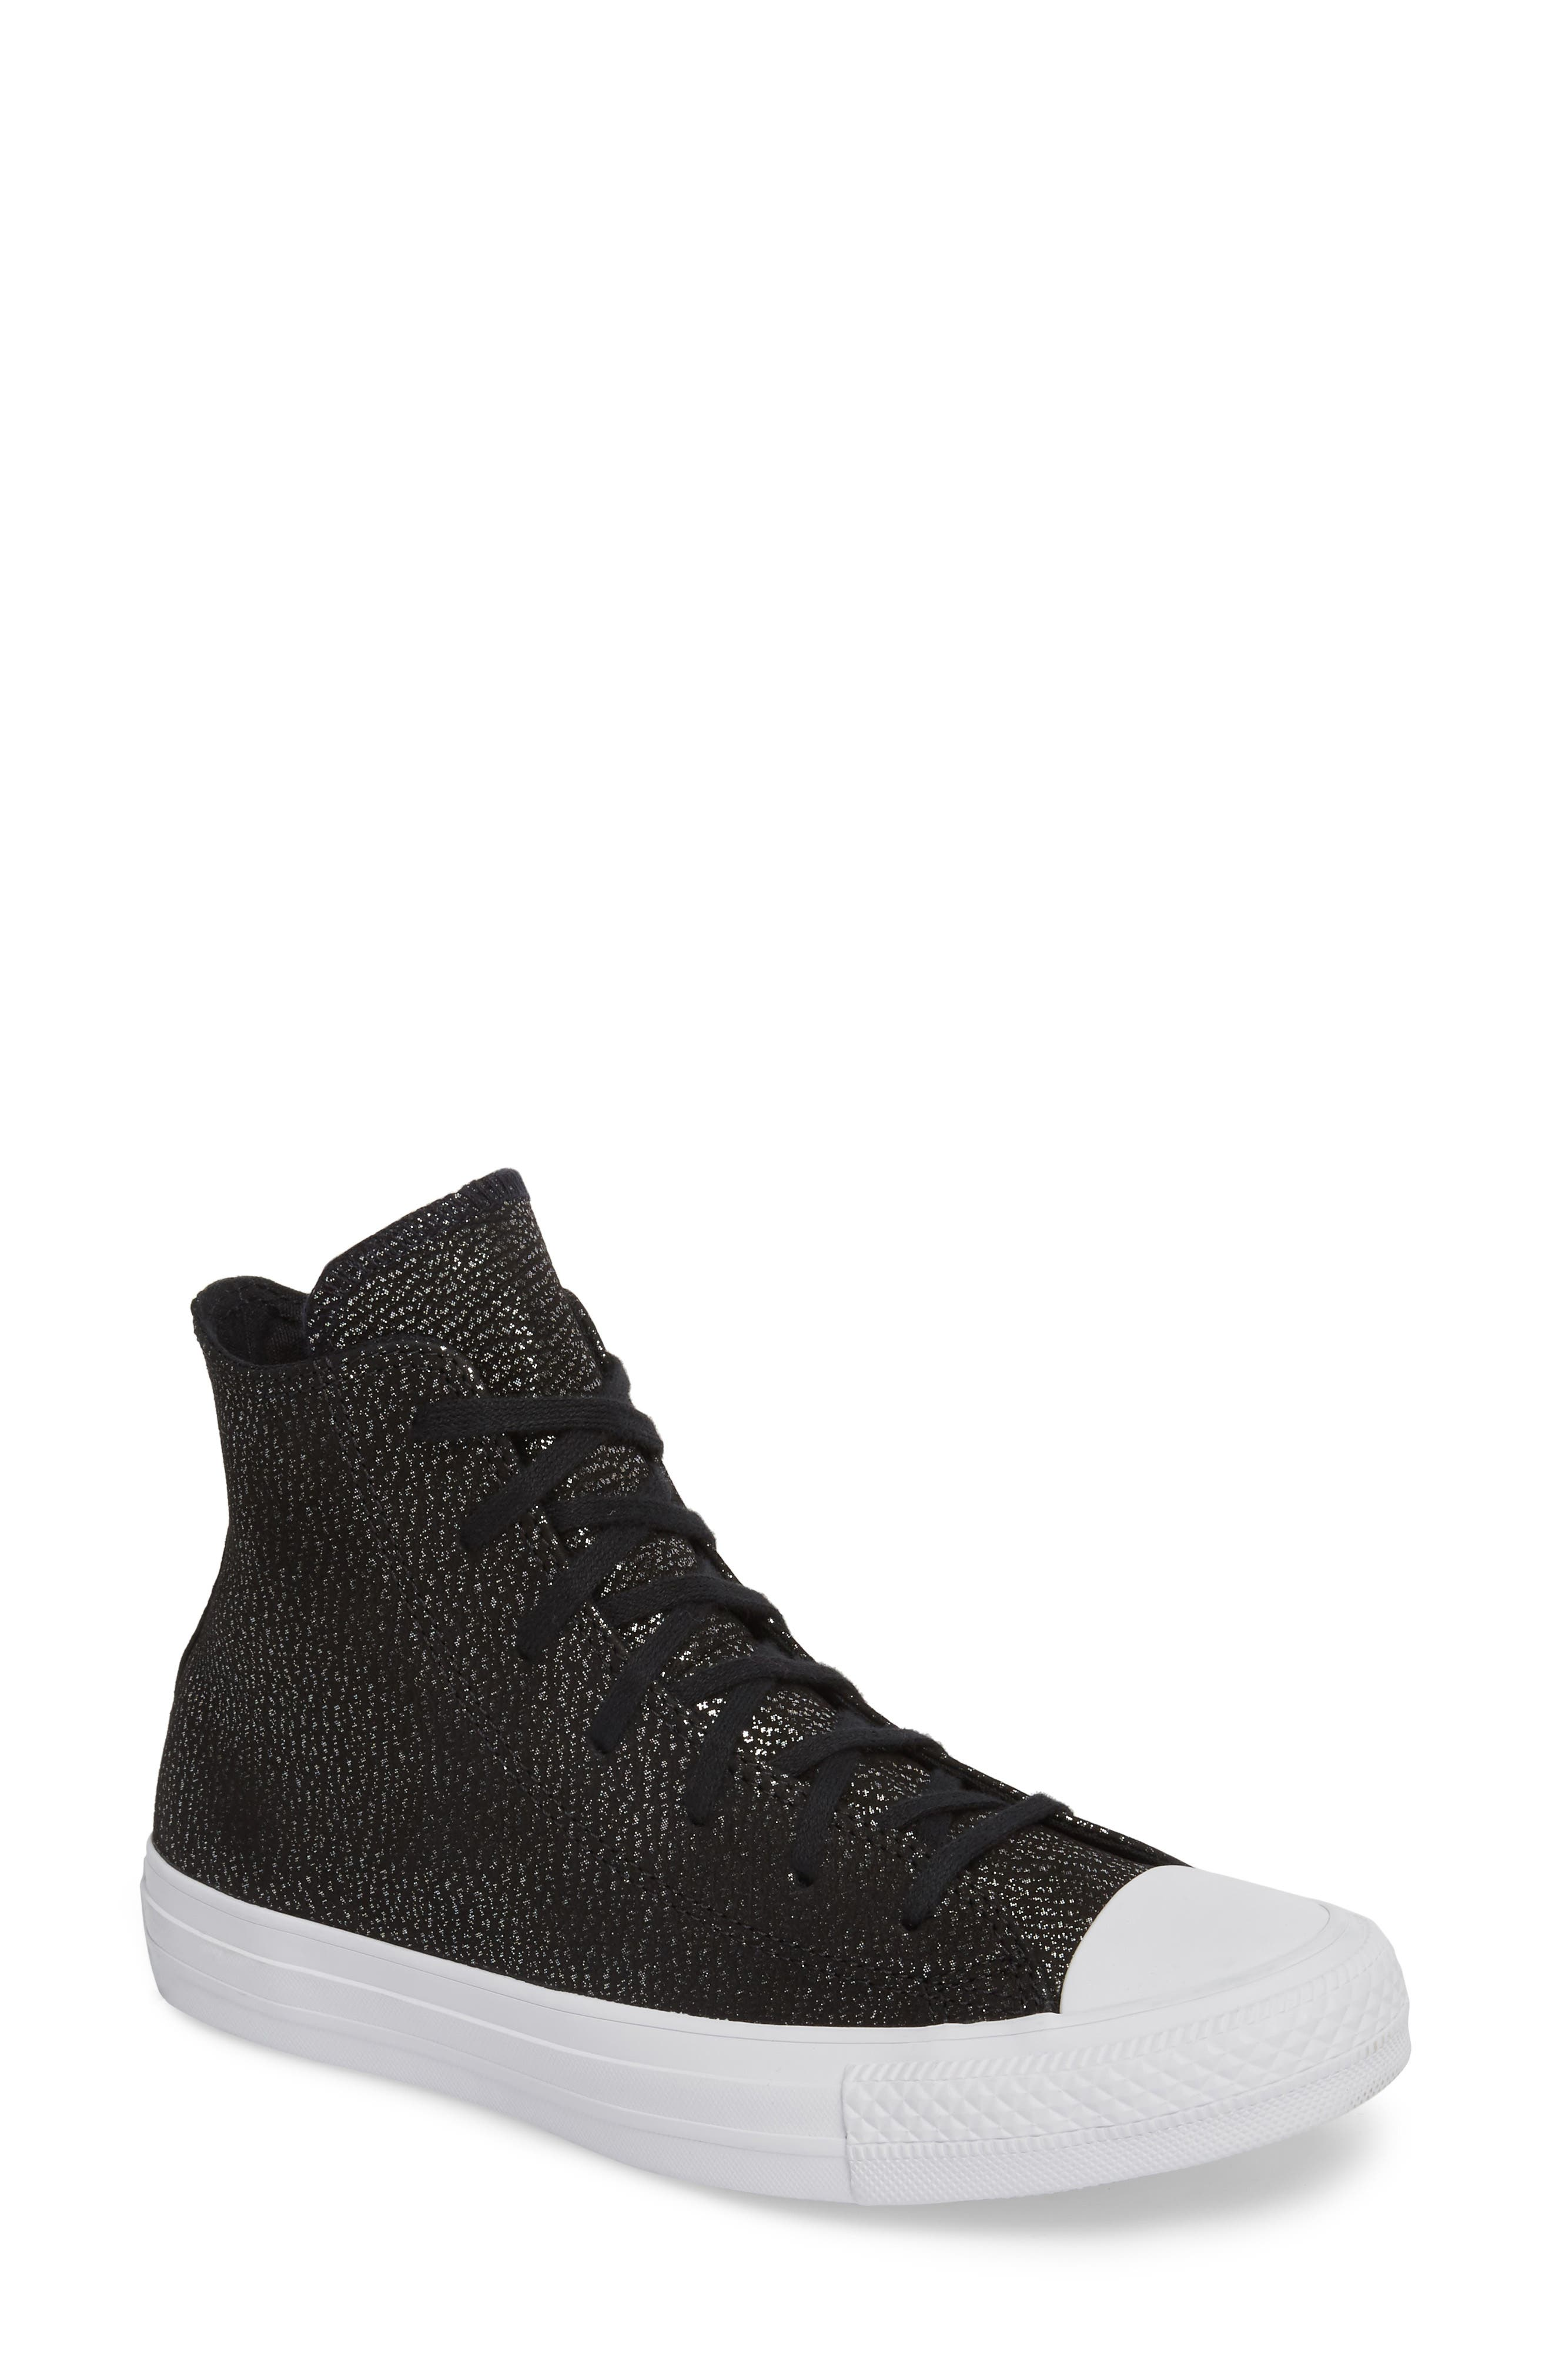 Chuck Taylor<sup>®</sup> All Star<sup>®</sup> Tipped Metallic High Top Sneaker,                             Main thumbnail 1, color,